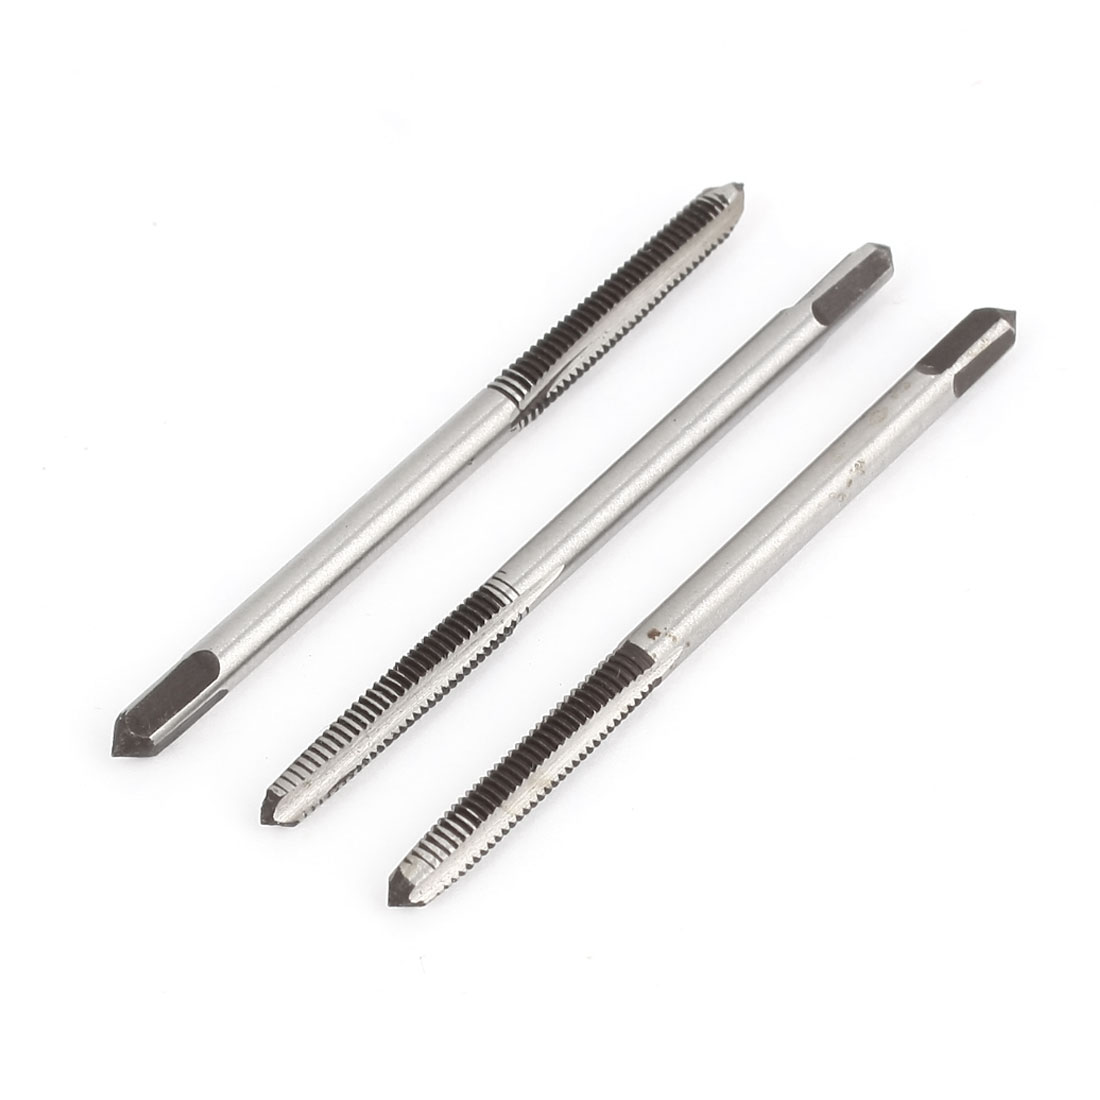 3pcs 3mm Cutting Dia Threaded 3 Flutes Tapper HSS Hand Tap